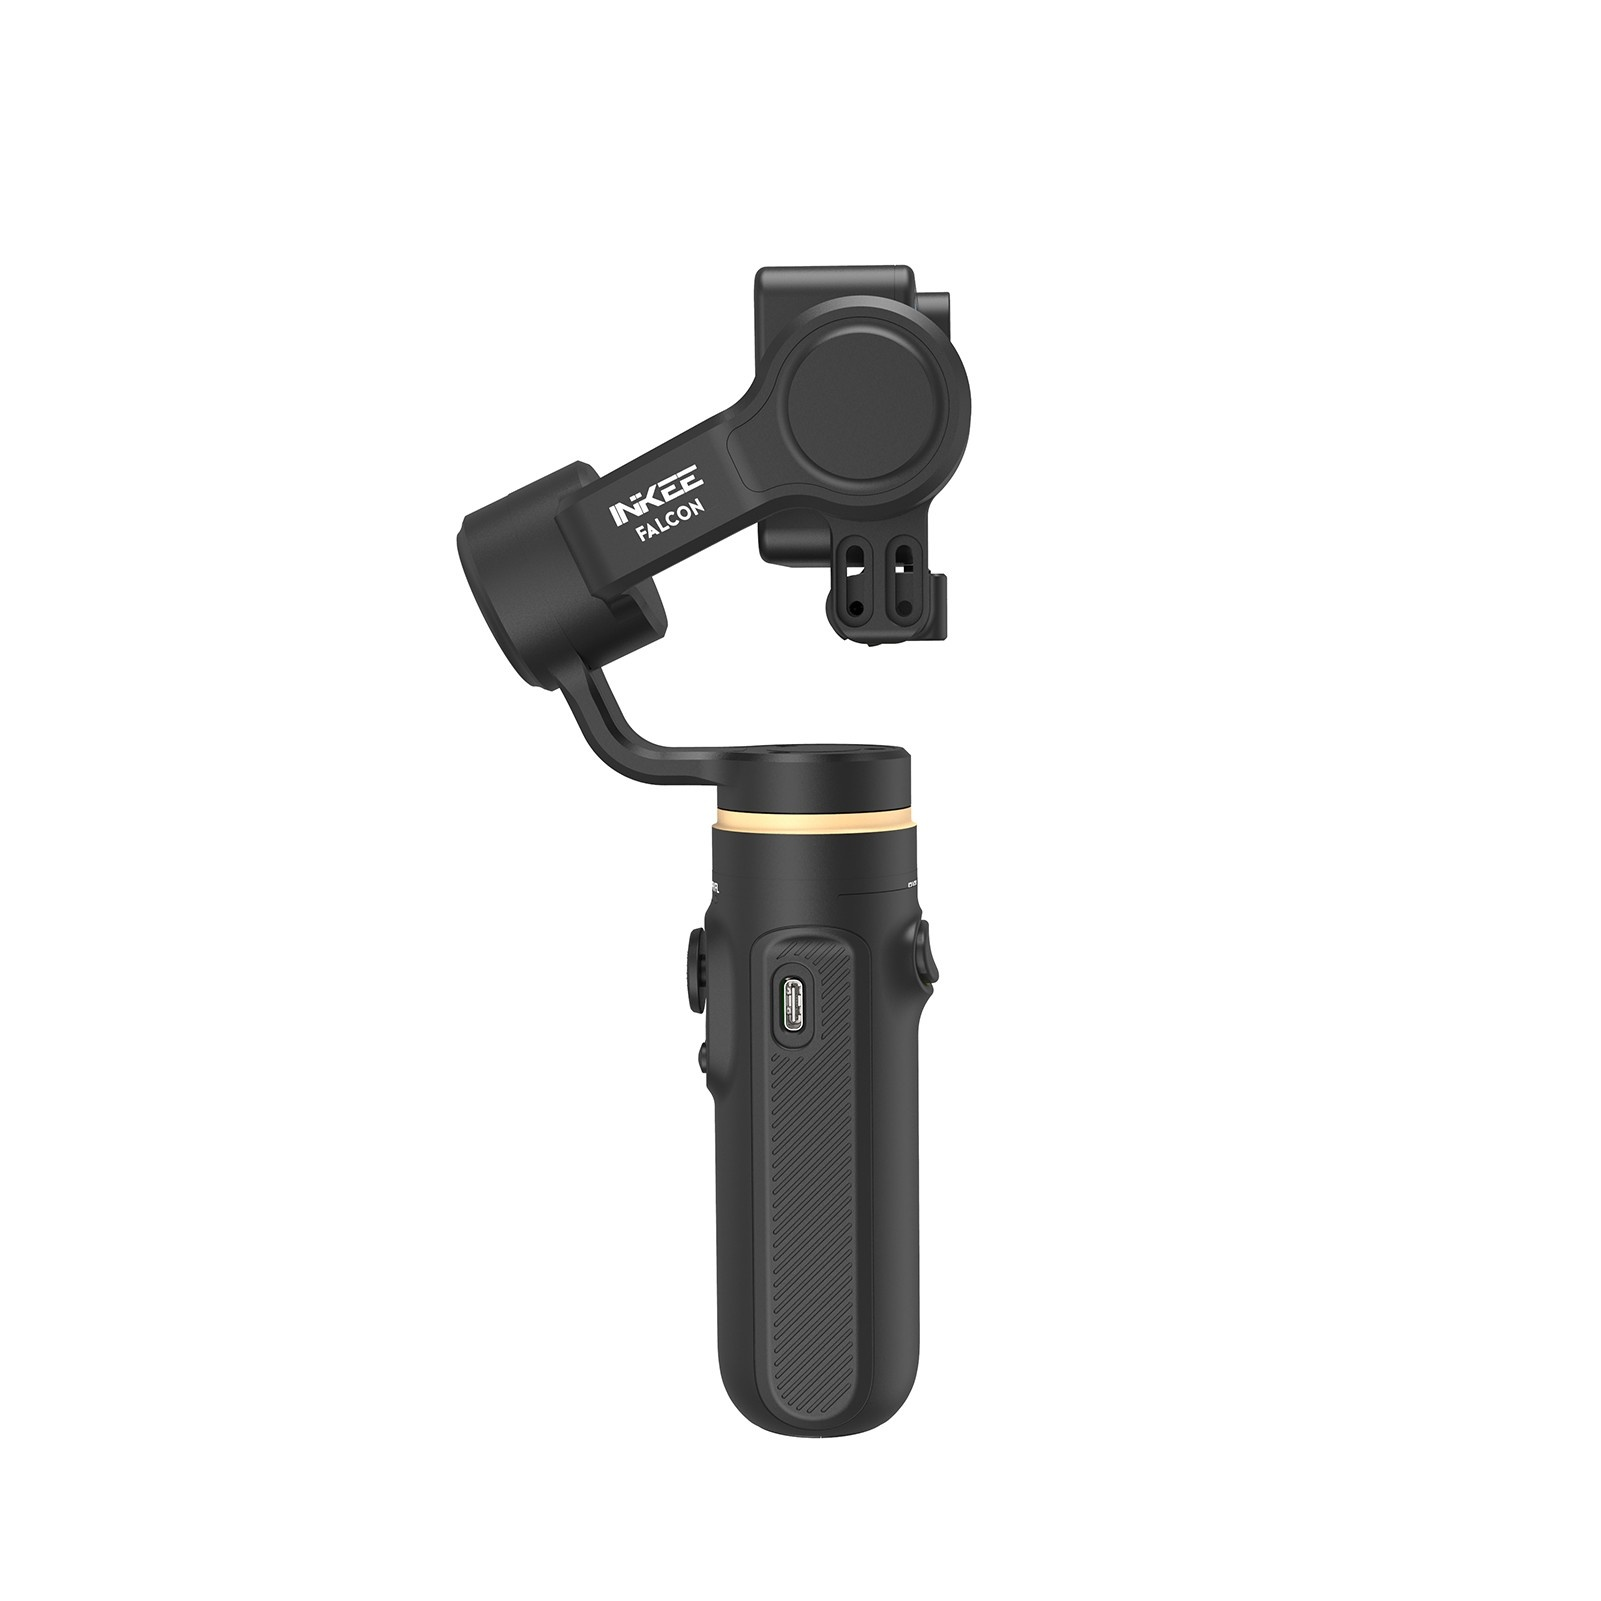 cafago.com - 59% OFF INKEE FALCON Handheld 3 Axis Action Camera Gimbal Stabilizer,free shipping+$99.97